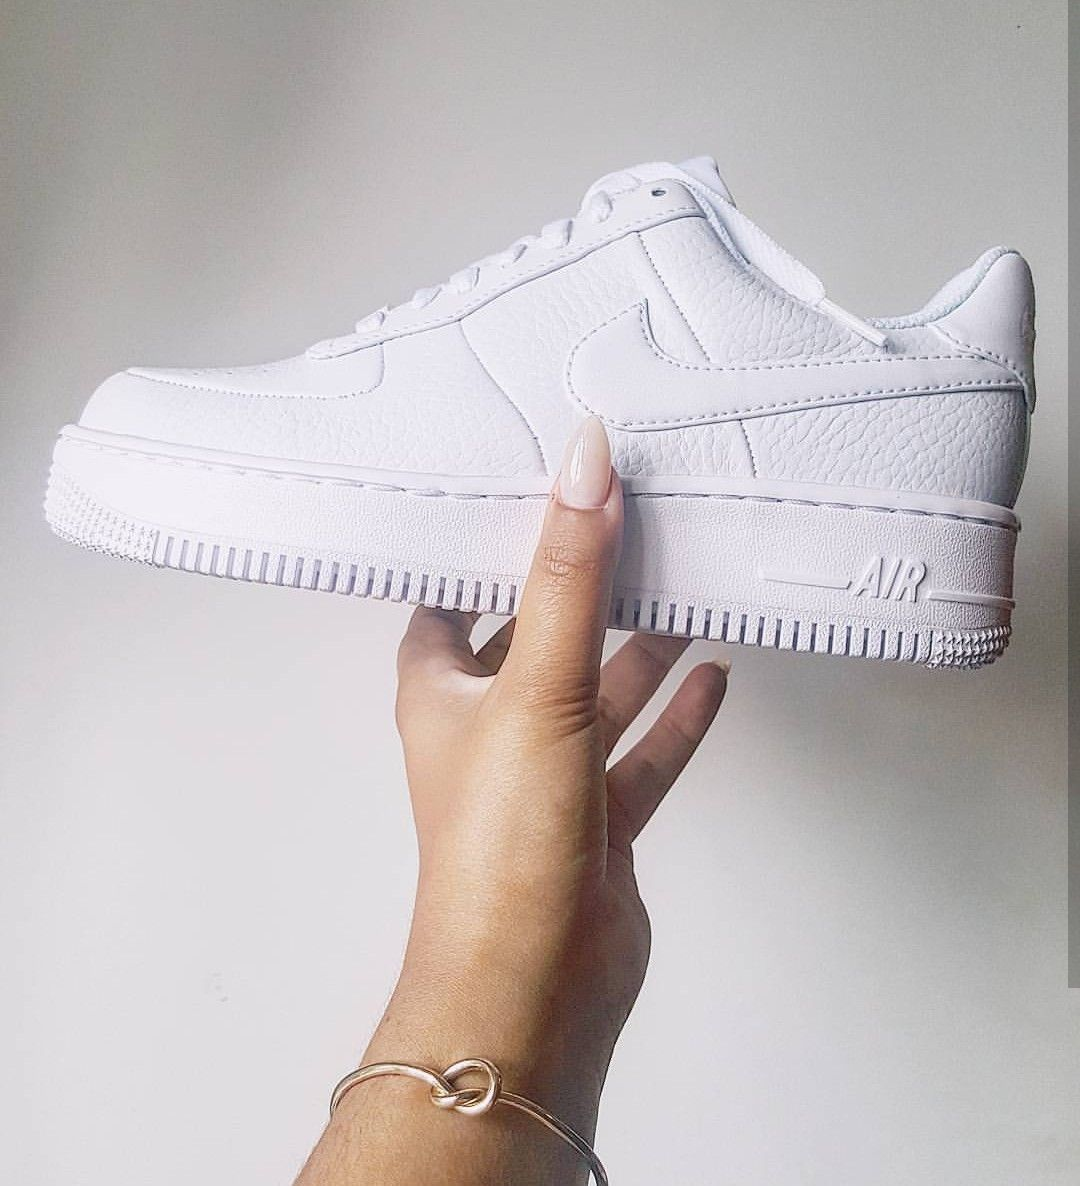 Nike Air Force 1 in whiteweiß Foto: sorayajoyx